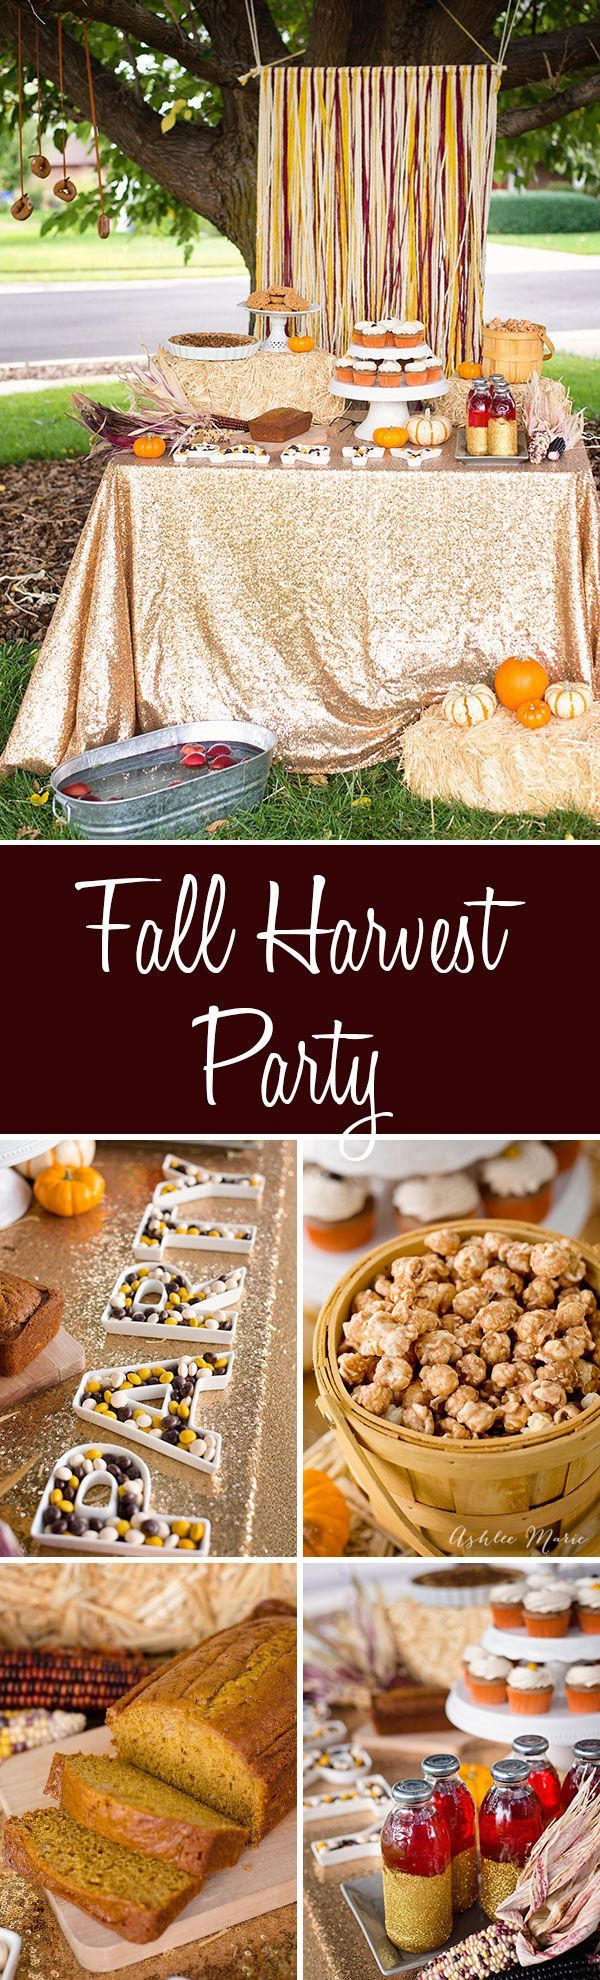 A Fall harvest party celebrating all things Fall, pumpkin bread, apple pie, cinnamon toast popcorn, pecan pie M&M's® cupcakes and more. Easy to put together with decorating tips and activities #BakeInTheFun #Ad